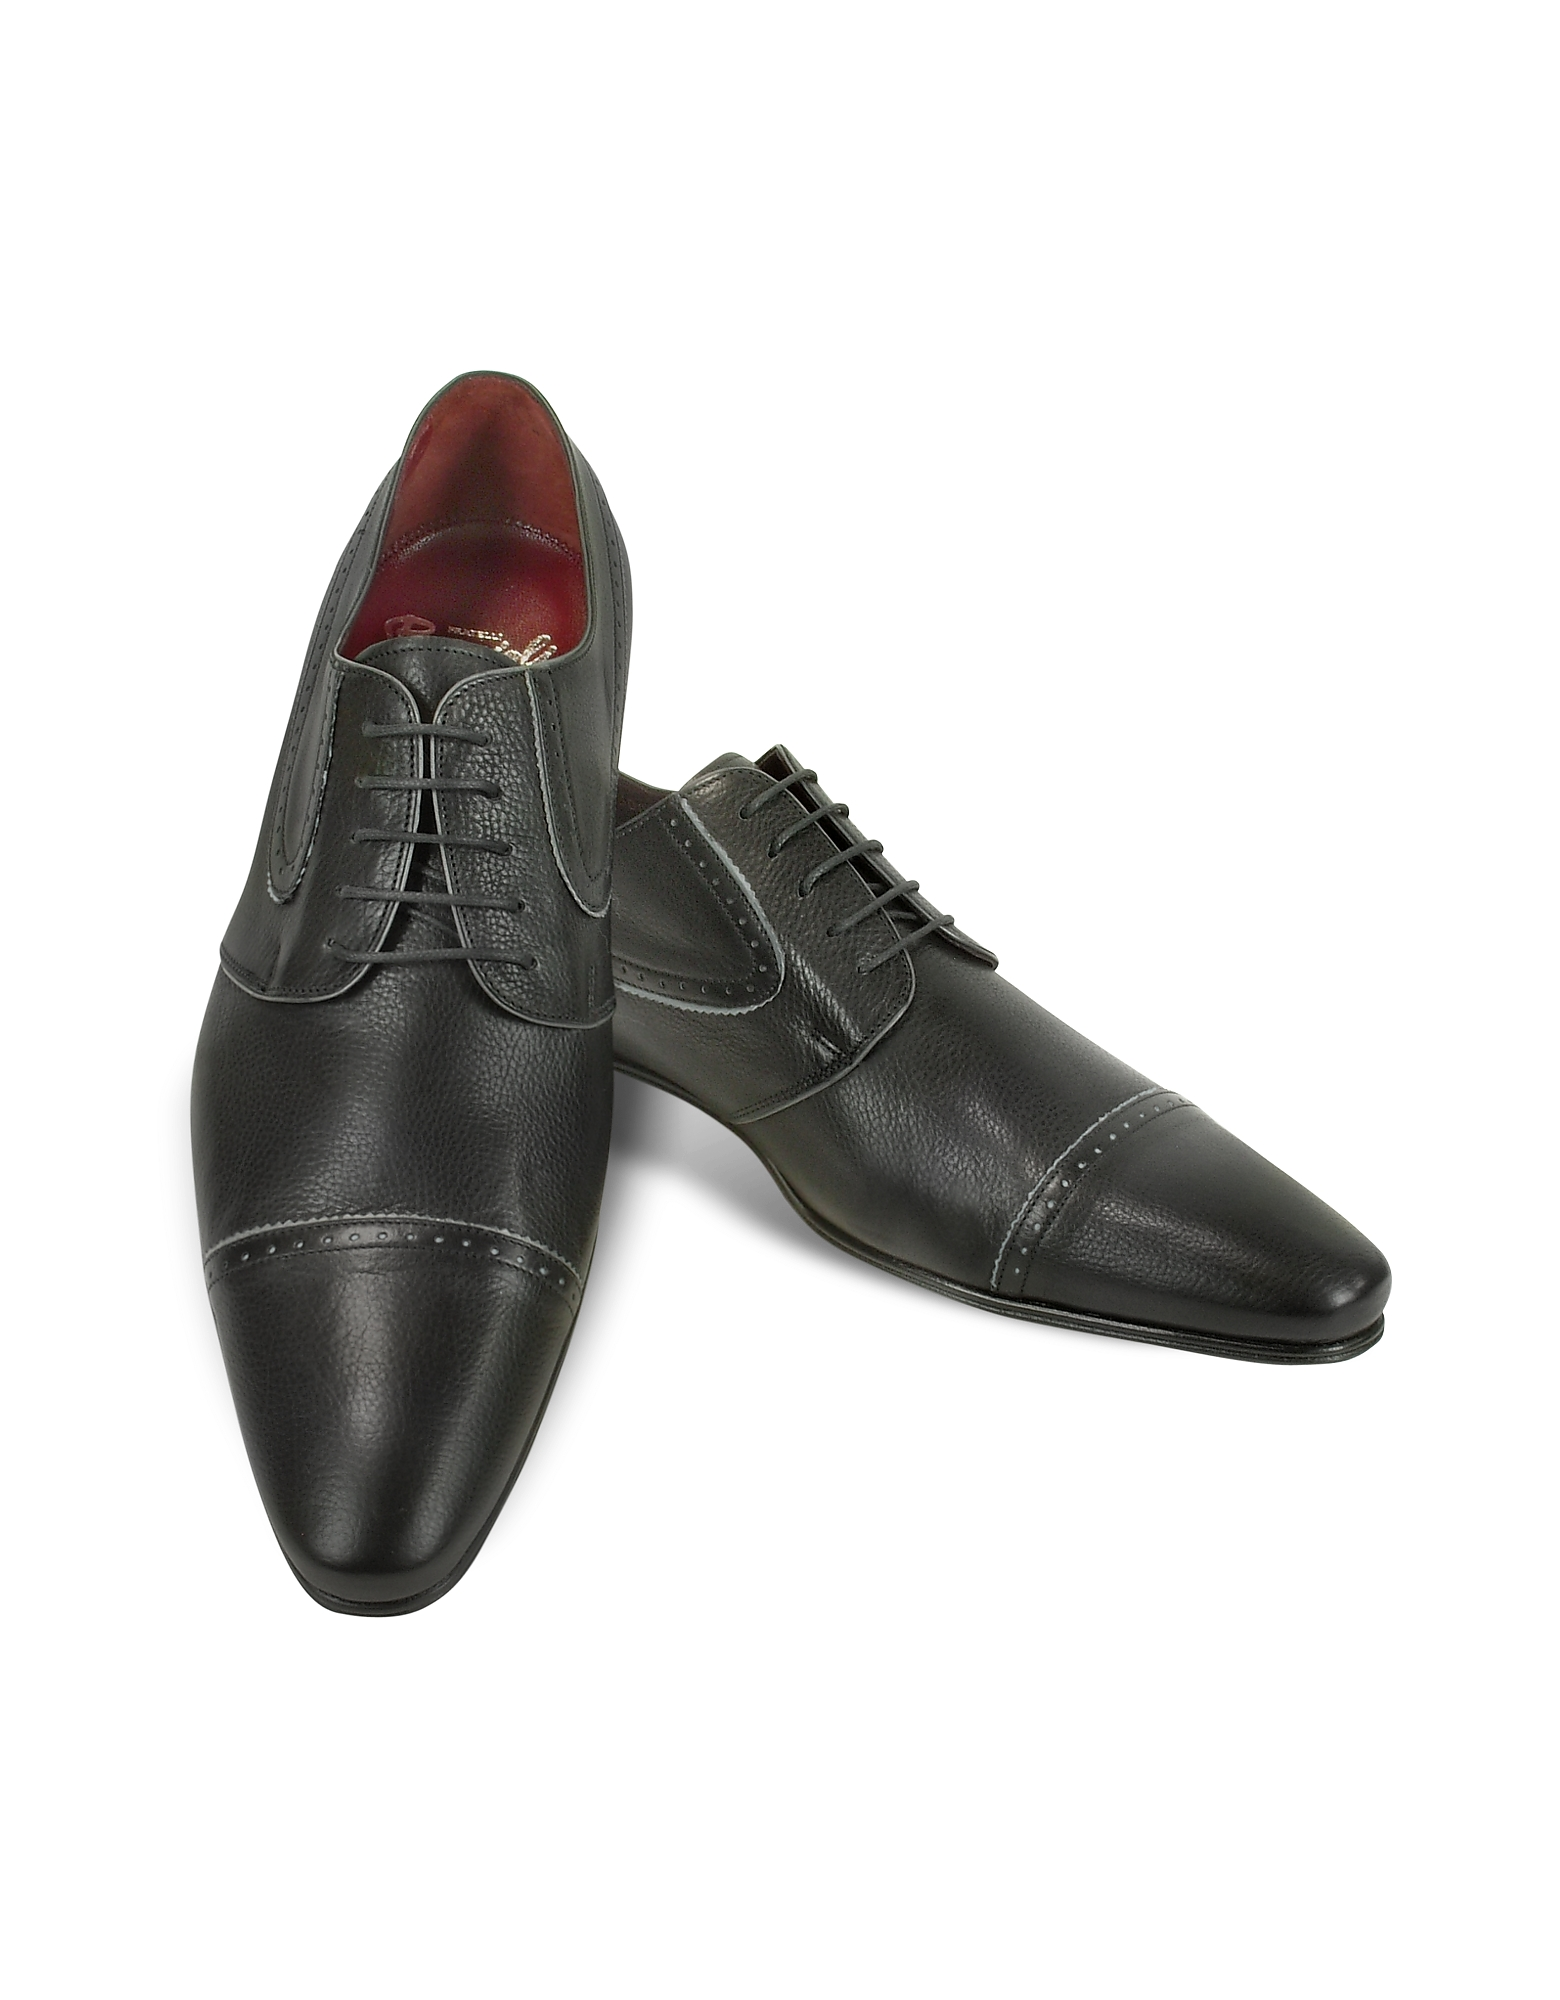 Image of Fratelli Borgioli Designer Shoes, Handmade Black Calf Leather Cap Toe Shoes